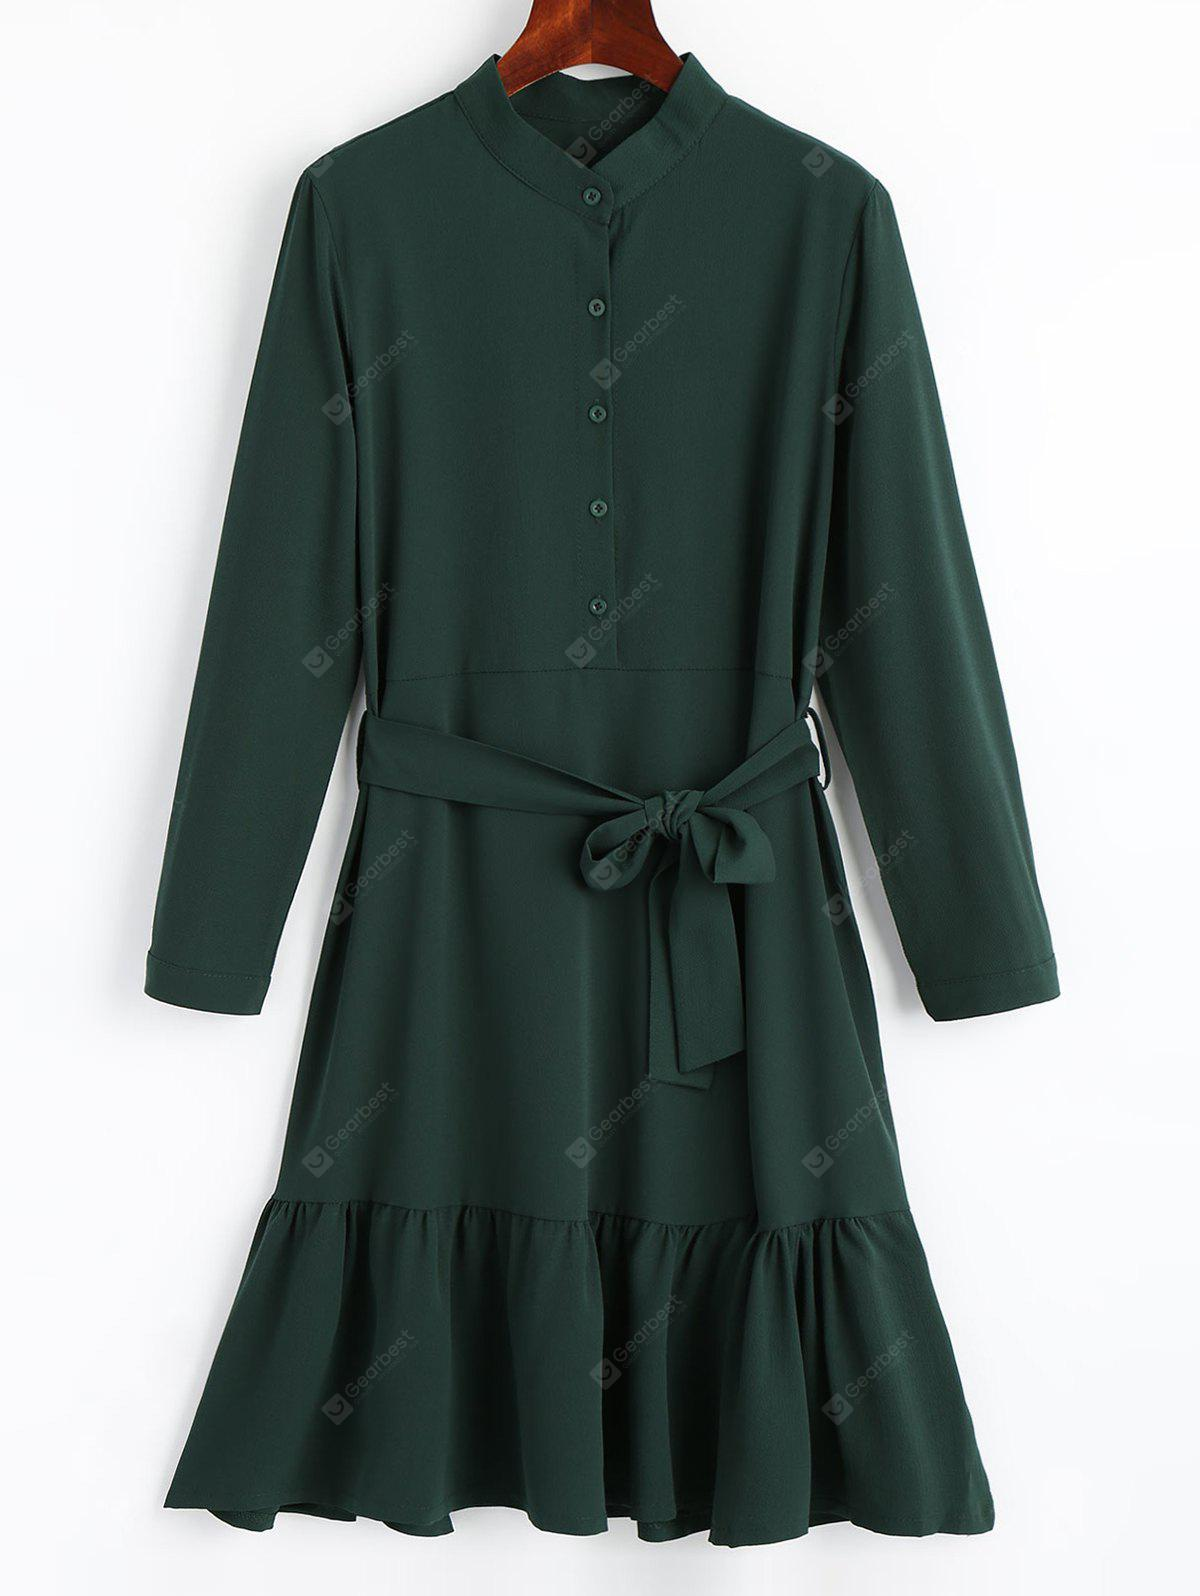 BLACKISH GREEN XL Belted Drop Waist Flowy Dress